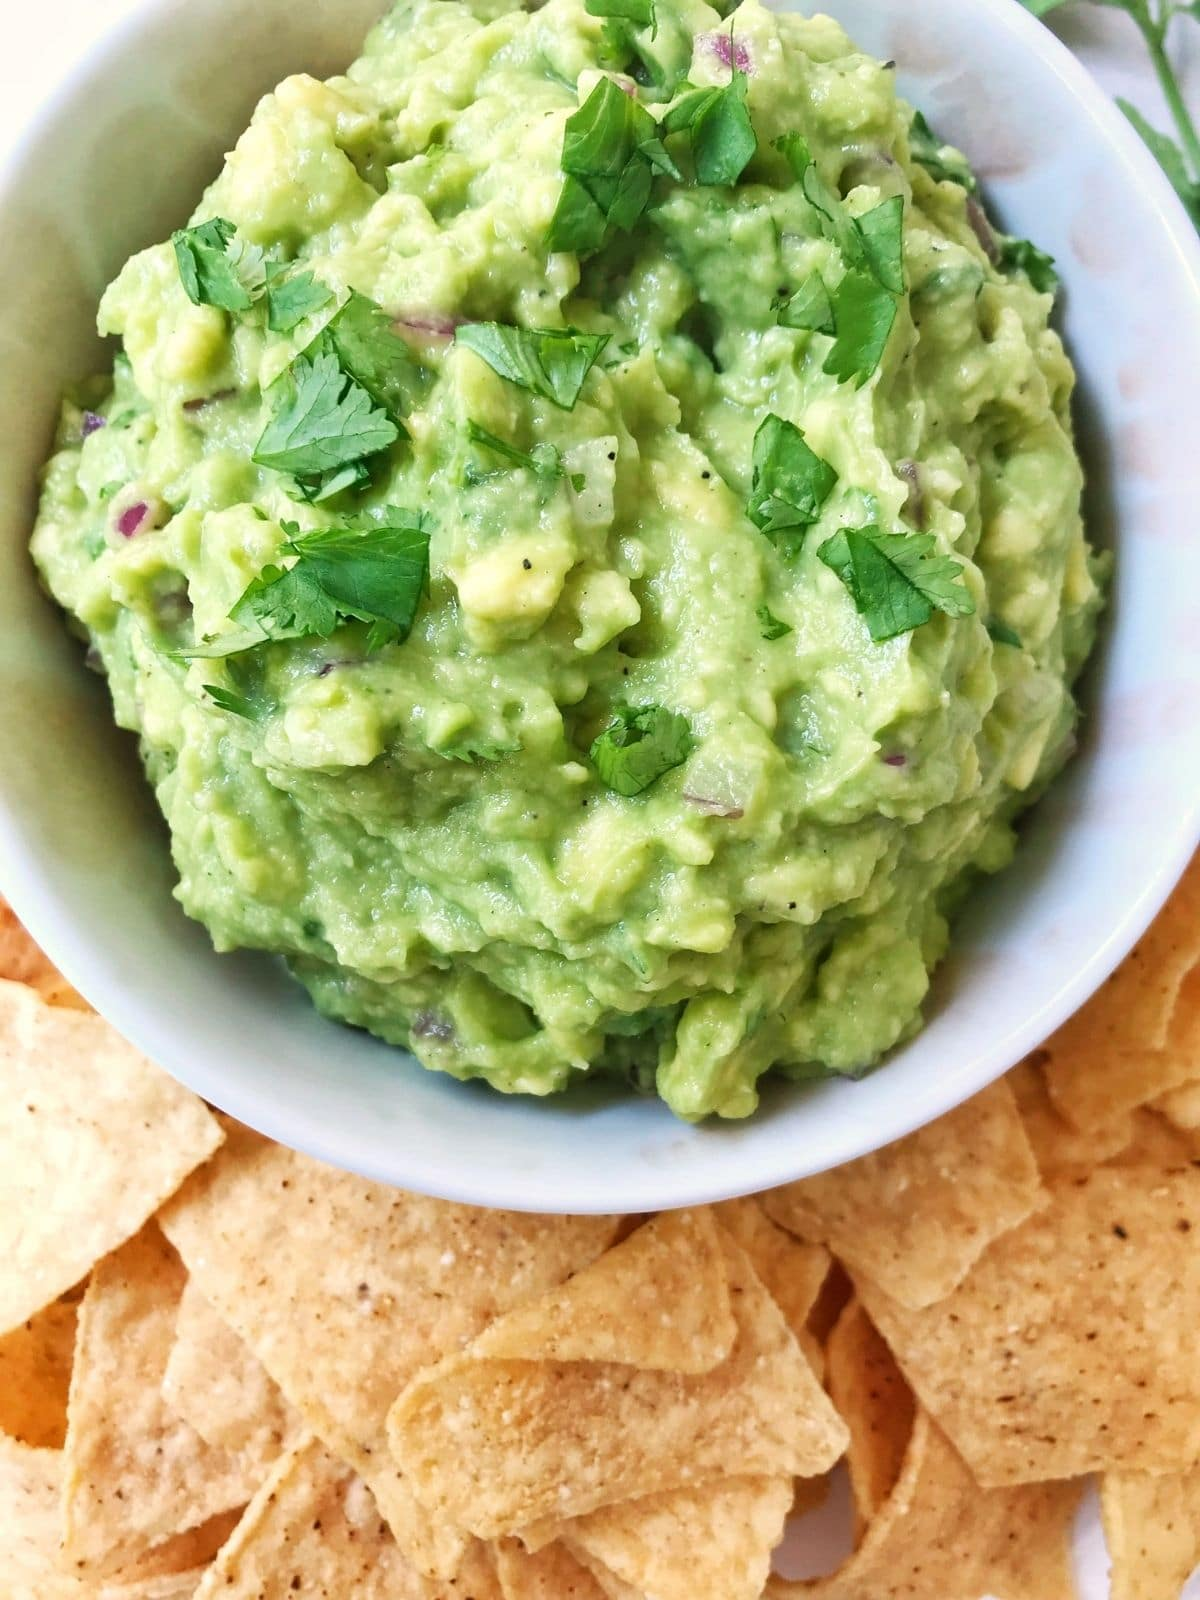 close up of bowl of avocado dip with tortilla chips on the side